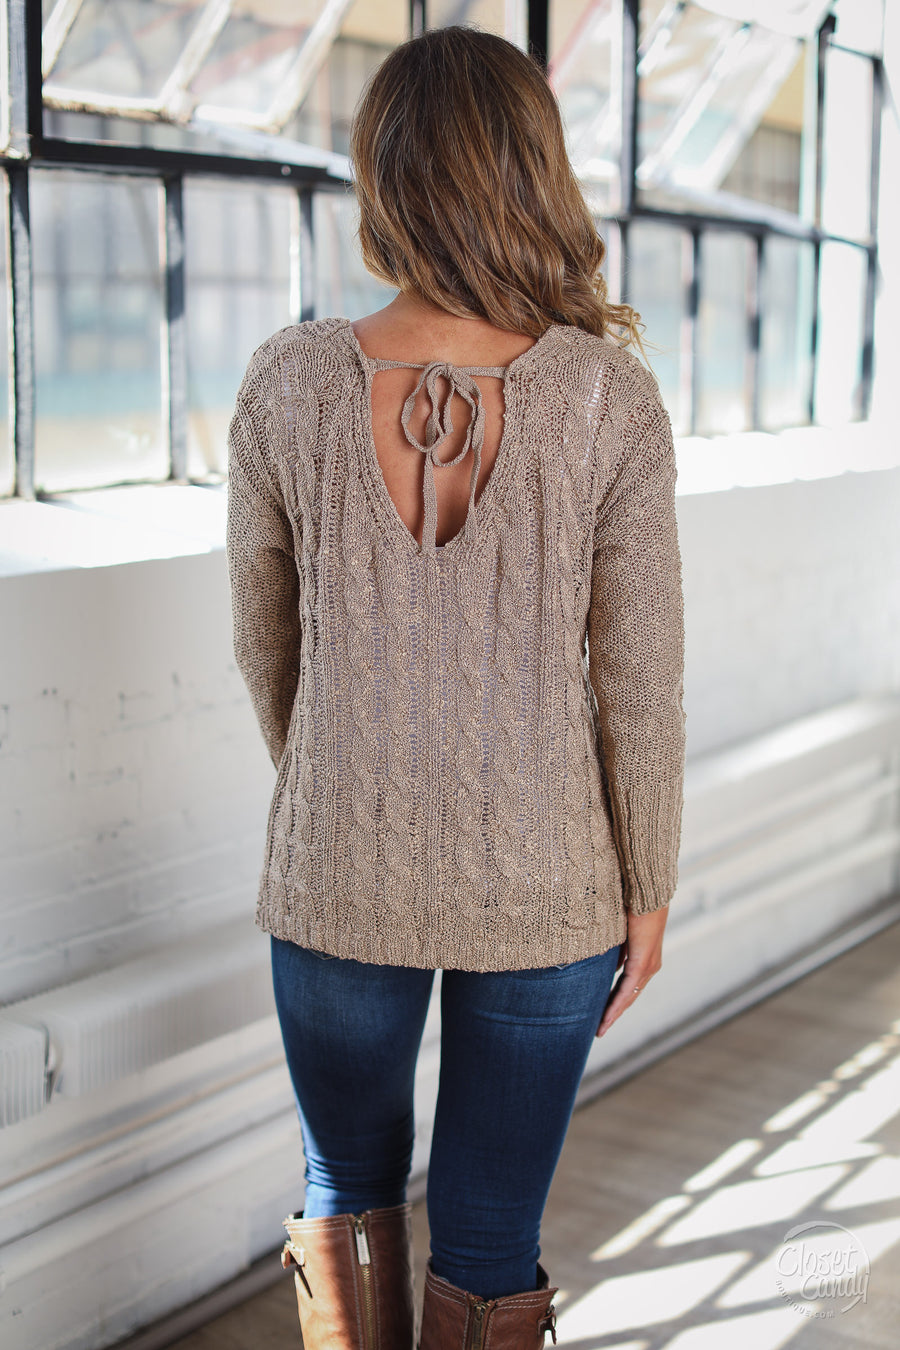 Season of Change Sweater - Taupe womens crossover top fall style closet candy